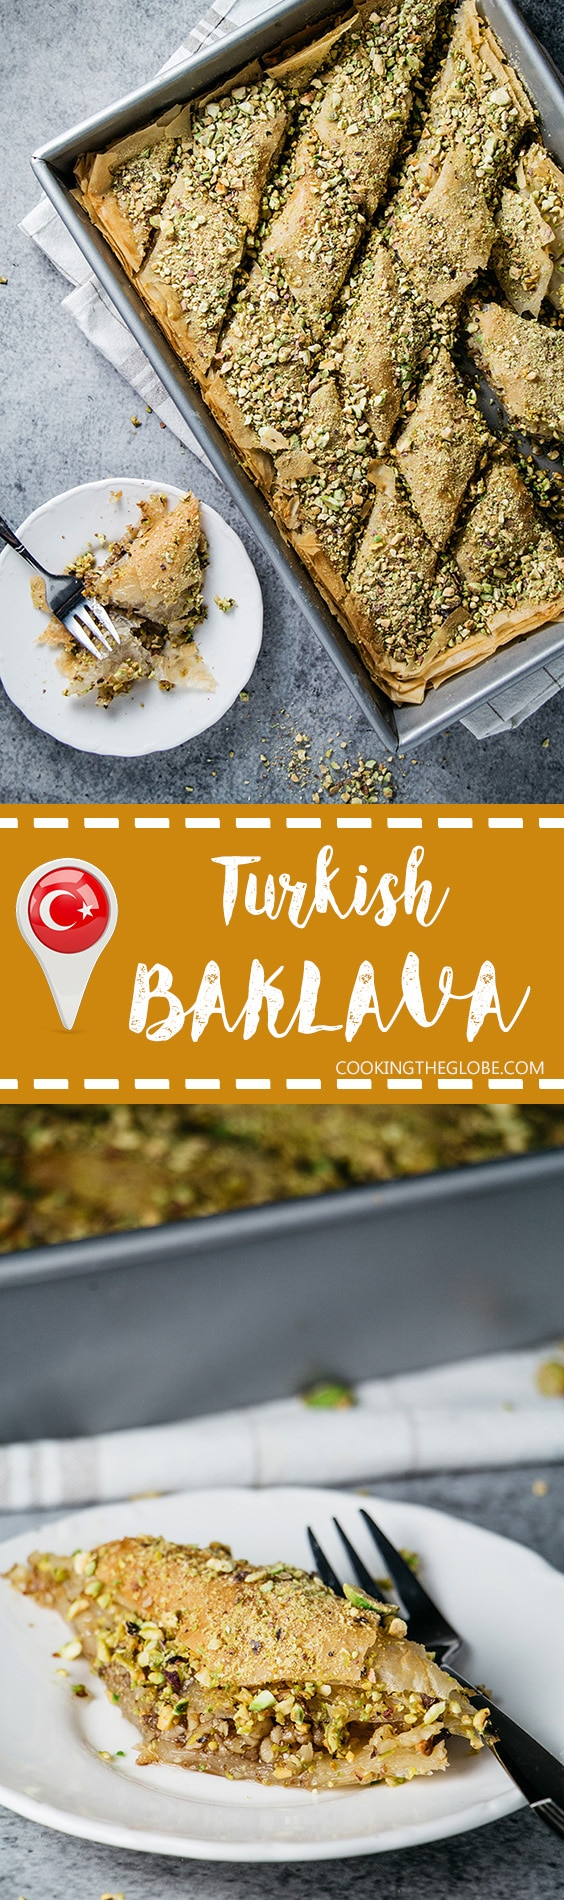 This Turkish baklava version features pistachios and walnuts inside and lemony sugar syrup all over it. So good you will lick your fingers clean! | cookingtheglobe.com